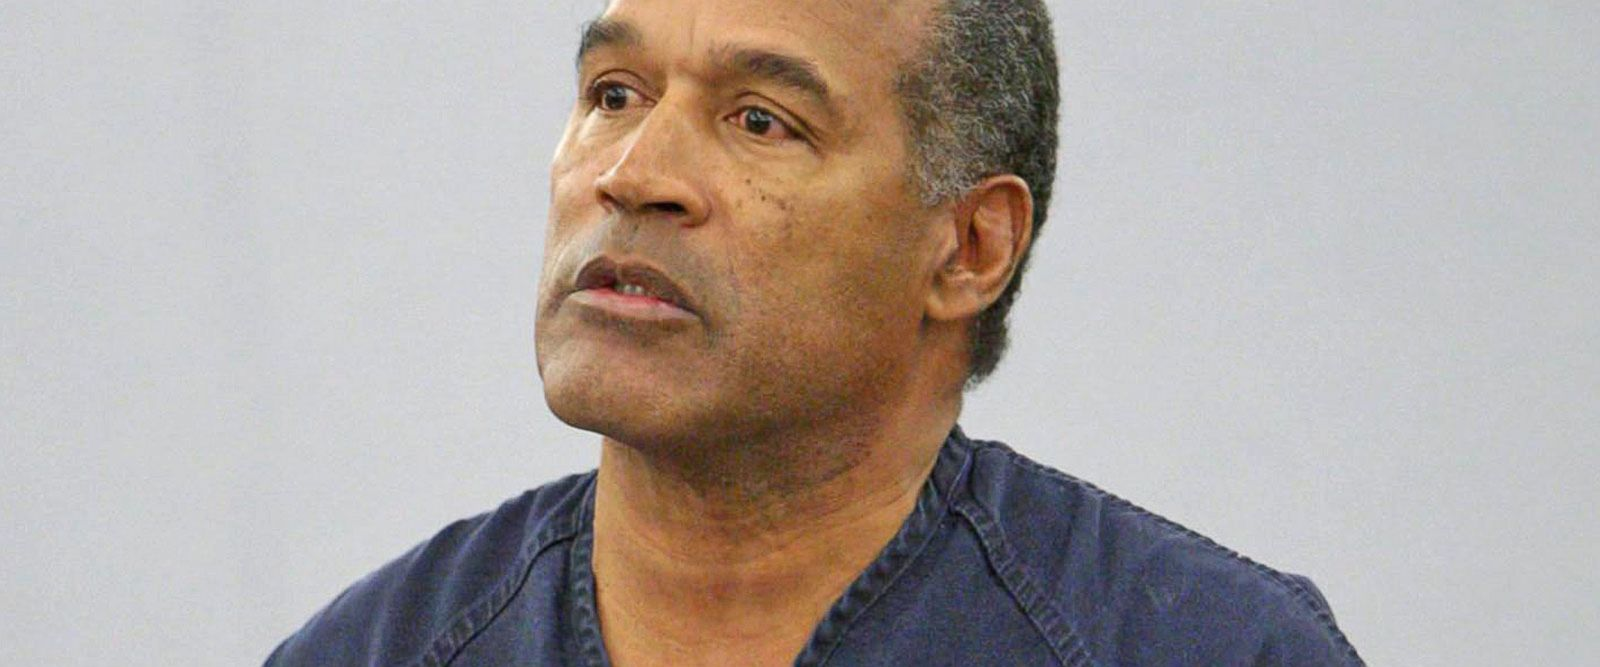 VIDEO: Could OJ Simpson be released from prison early?